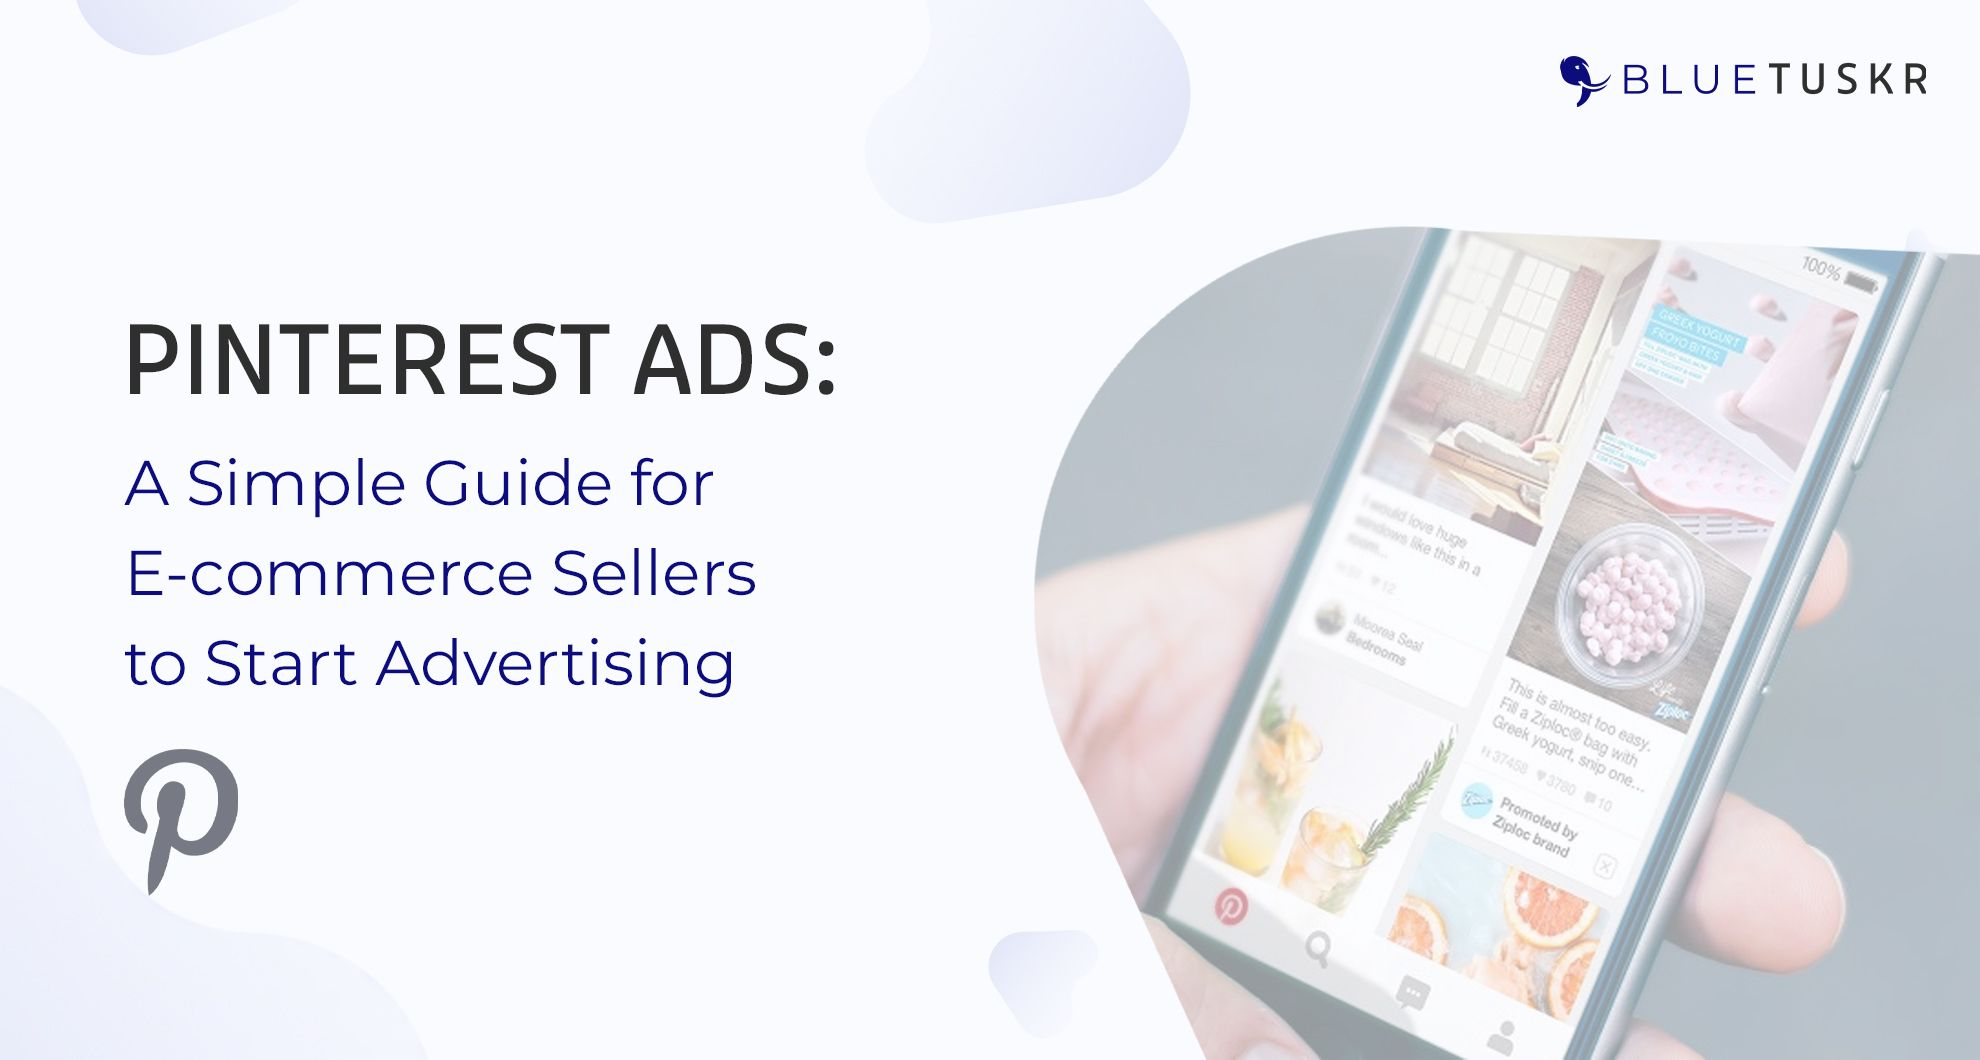 Pinterest Ads: A Simple Guide for E-commerce Sellers to Start Advertising